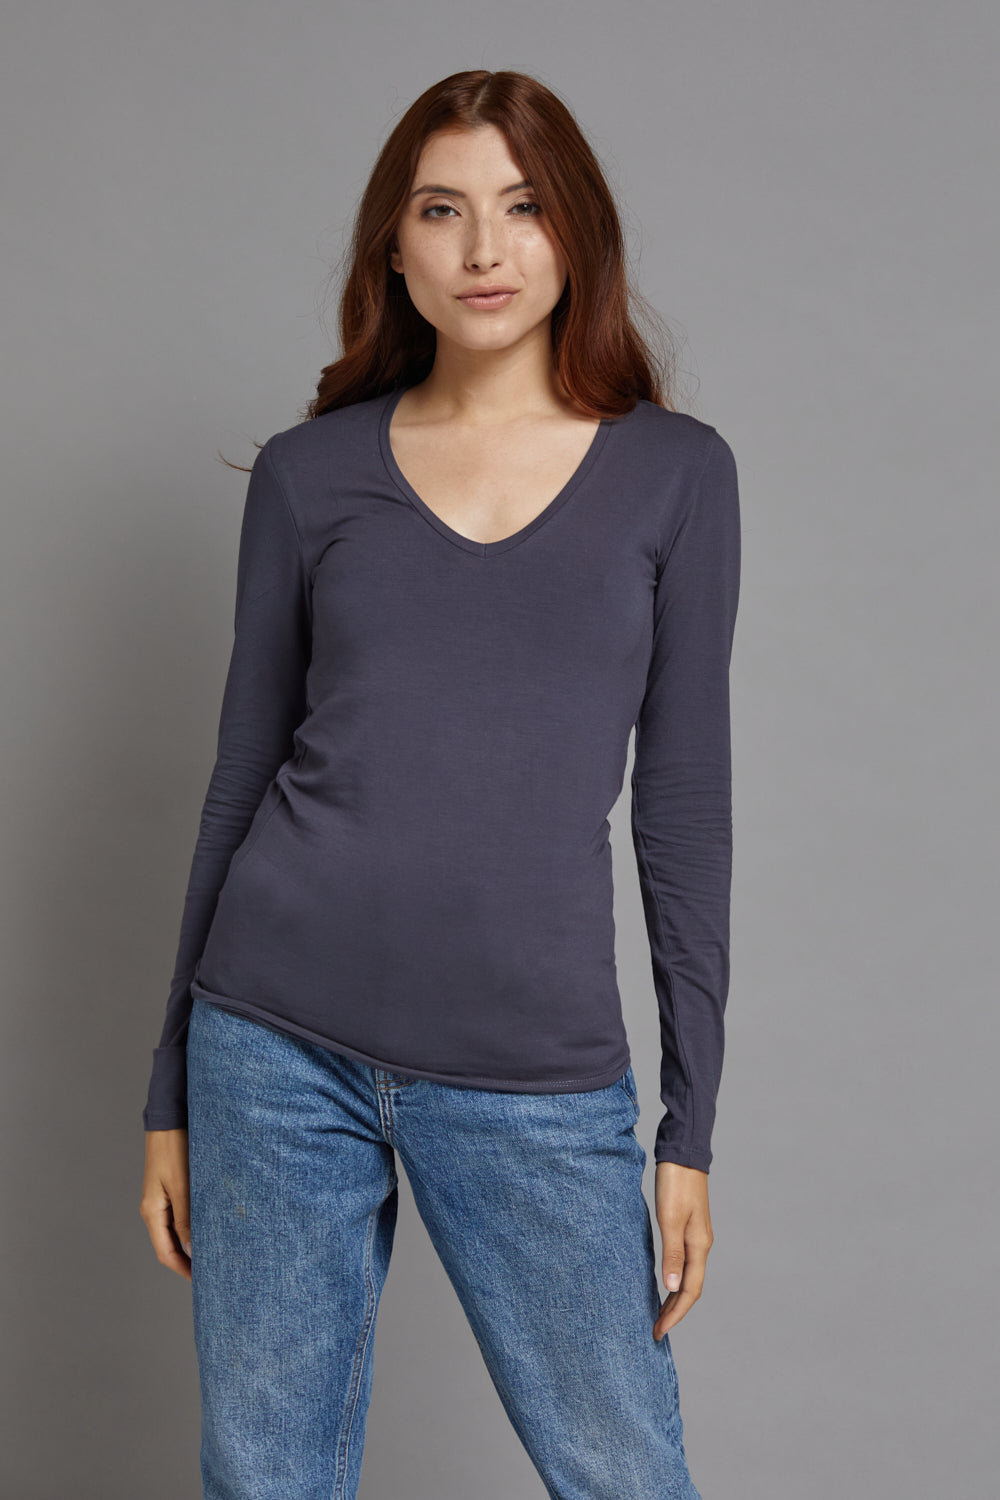 Majestic Long Sleeve Viscose V-Neck Tee in Ombra